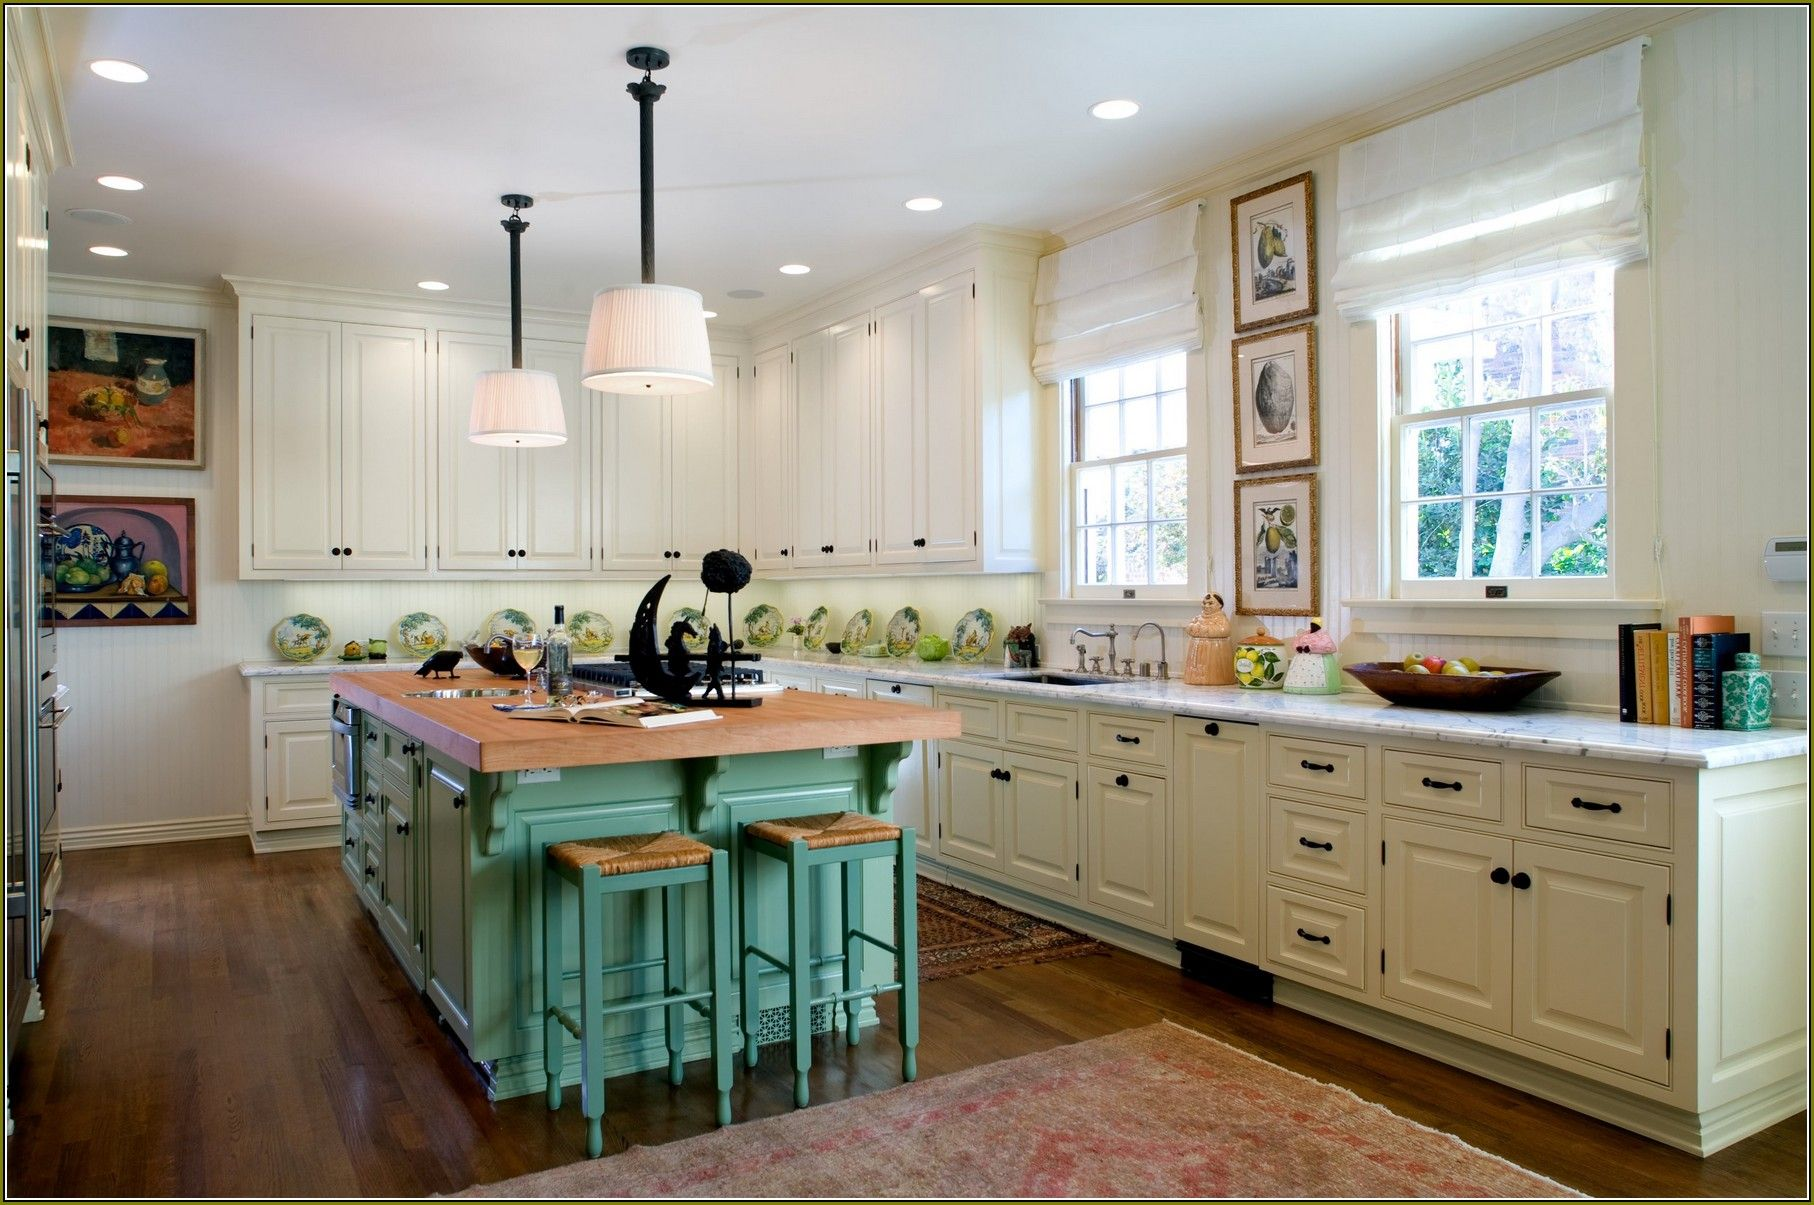 Antique Turquoise Kitchen Cabinets Home Design Ideas Turquoise Kitchen Cabinets Distressed Kitchen Cabinets Kitchen Cabinet Design